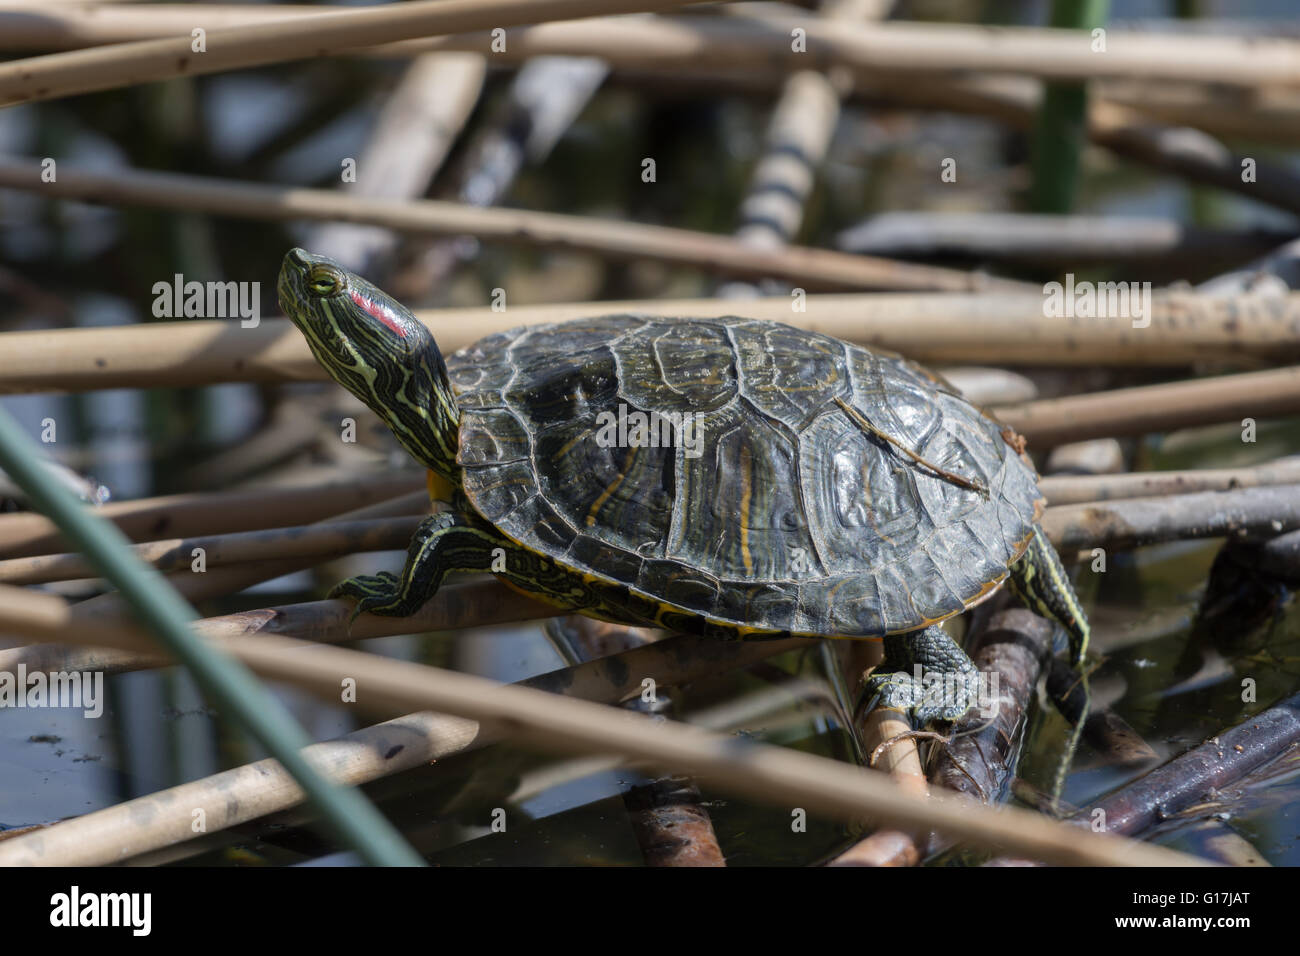 Juvenile Red-eared Slider, (Trachemys scripta elegans), Wildlife Management Ponds at Tingley Beach, Albuquerque, - Stock Image